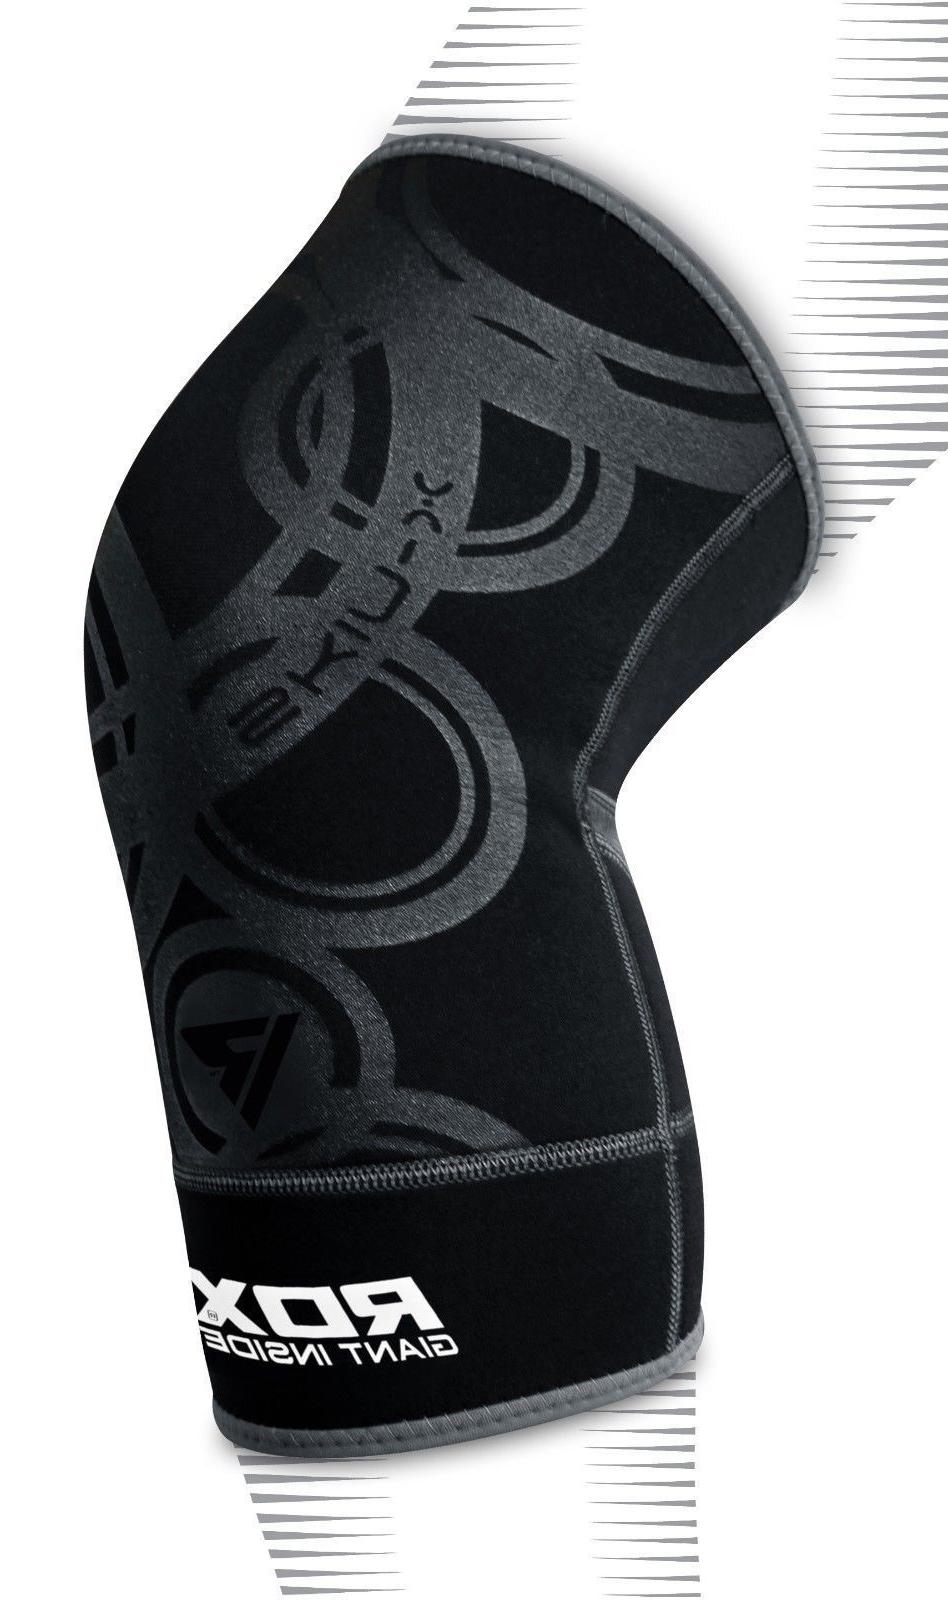 RDX Knee Support Protector Pads Gear Brace Sleeves Sports Relief Neoprene